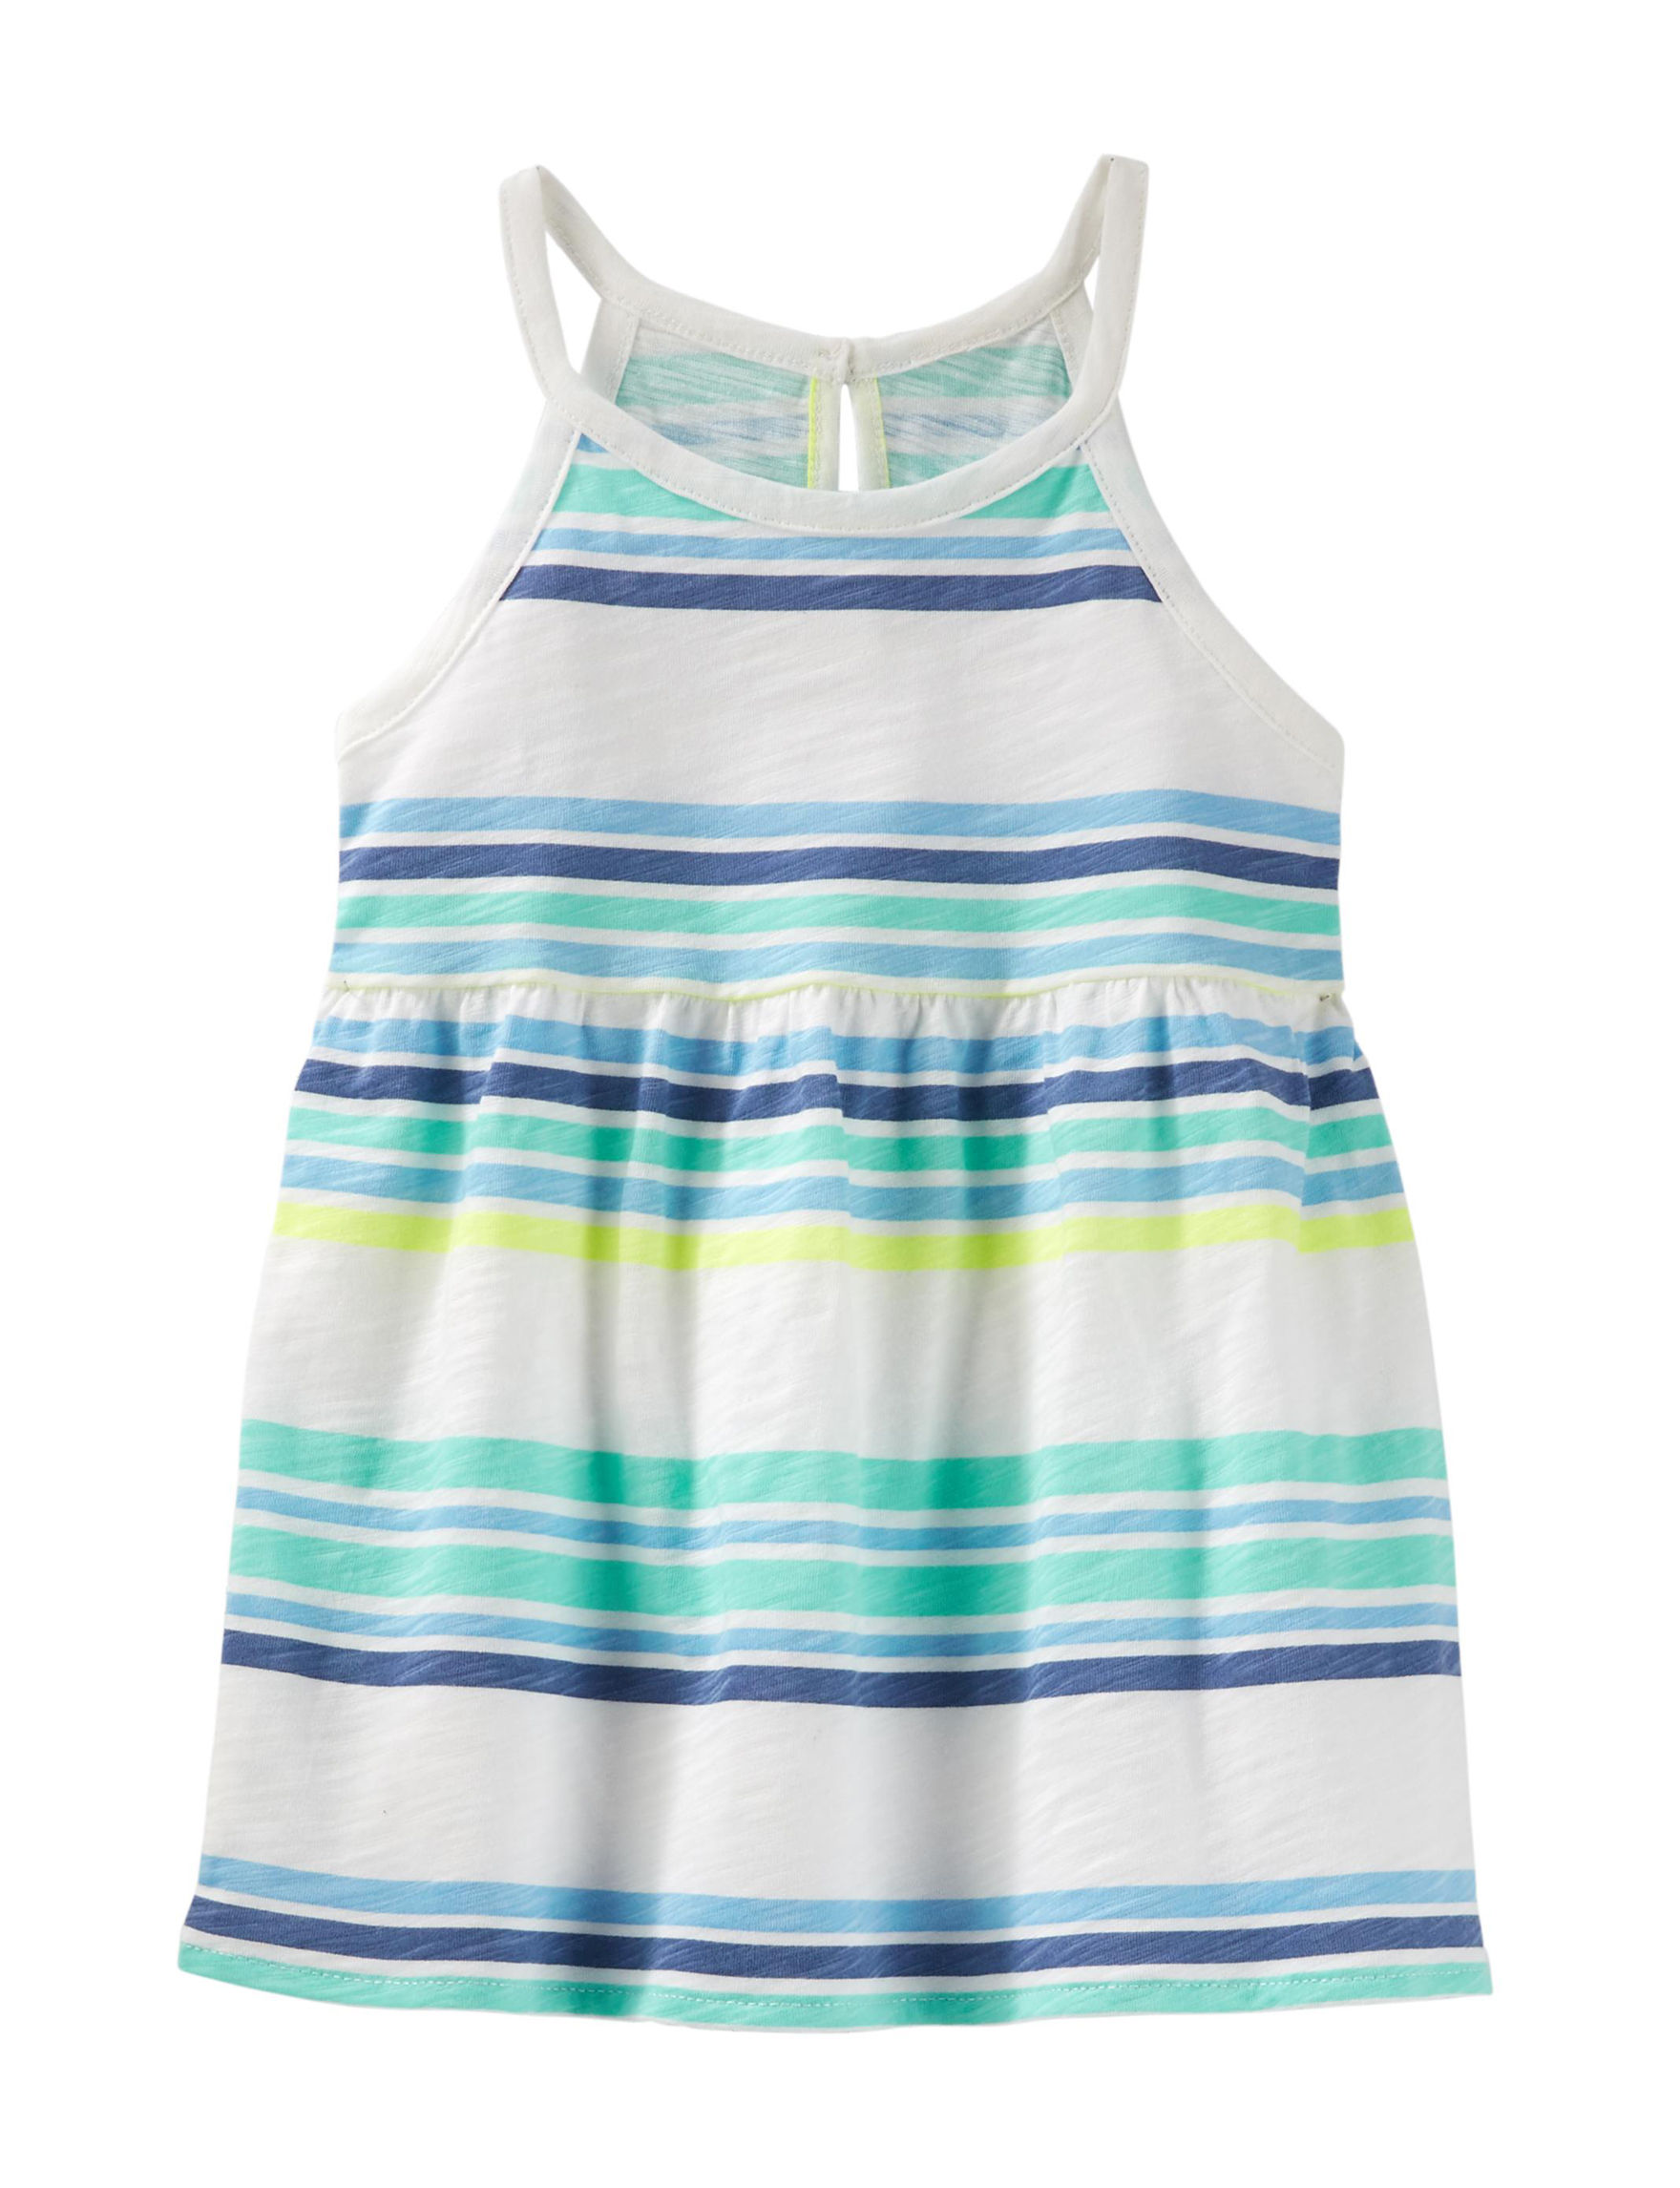 Oshkosh B'Gosh White Stripe